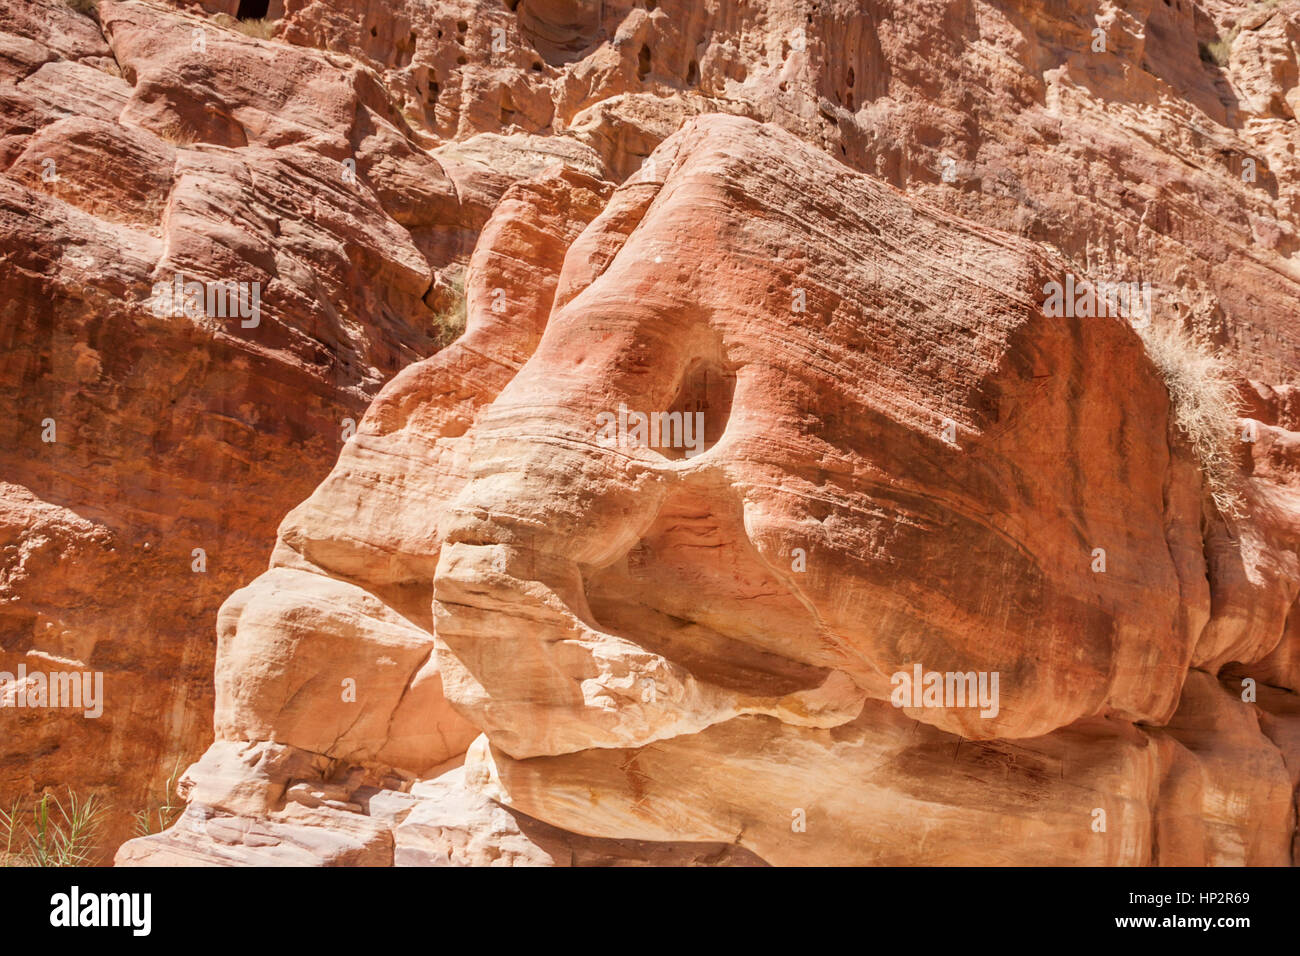 Rocks of pink sandstone resembling elephant head in Siq canyon in Petra, Jordan - Stock Image